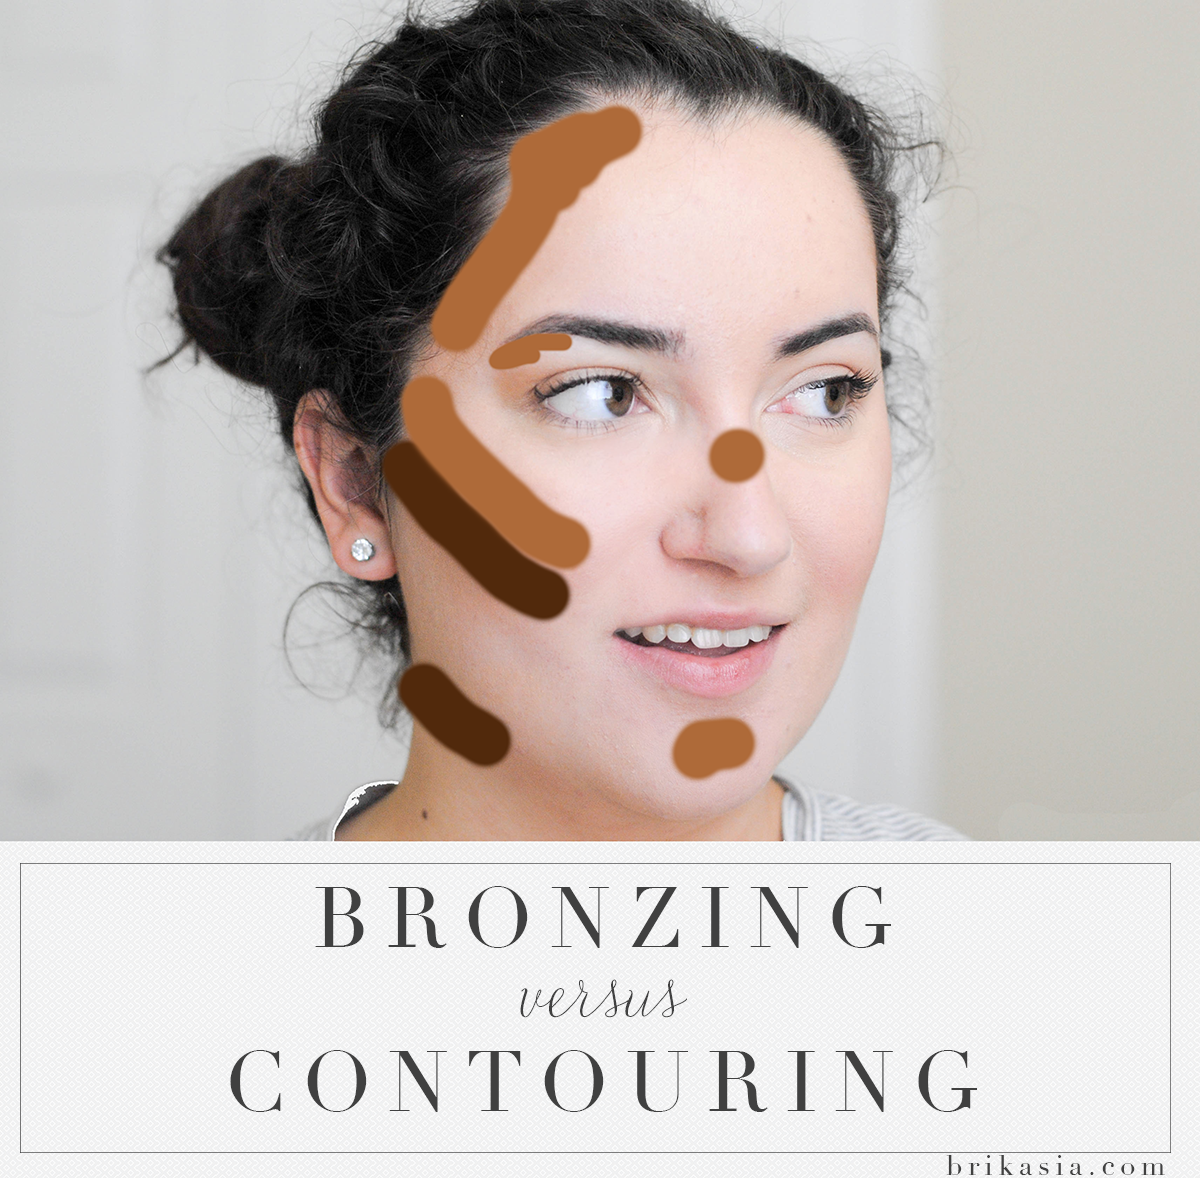 how to use bronzer, how to contour face, difference between bronzing and contouring